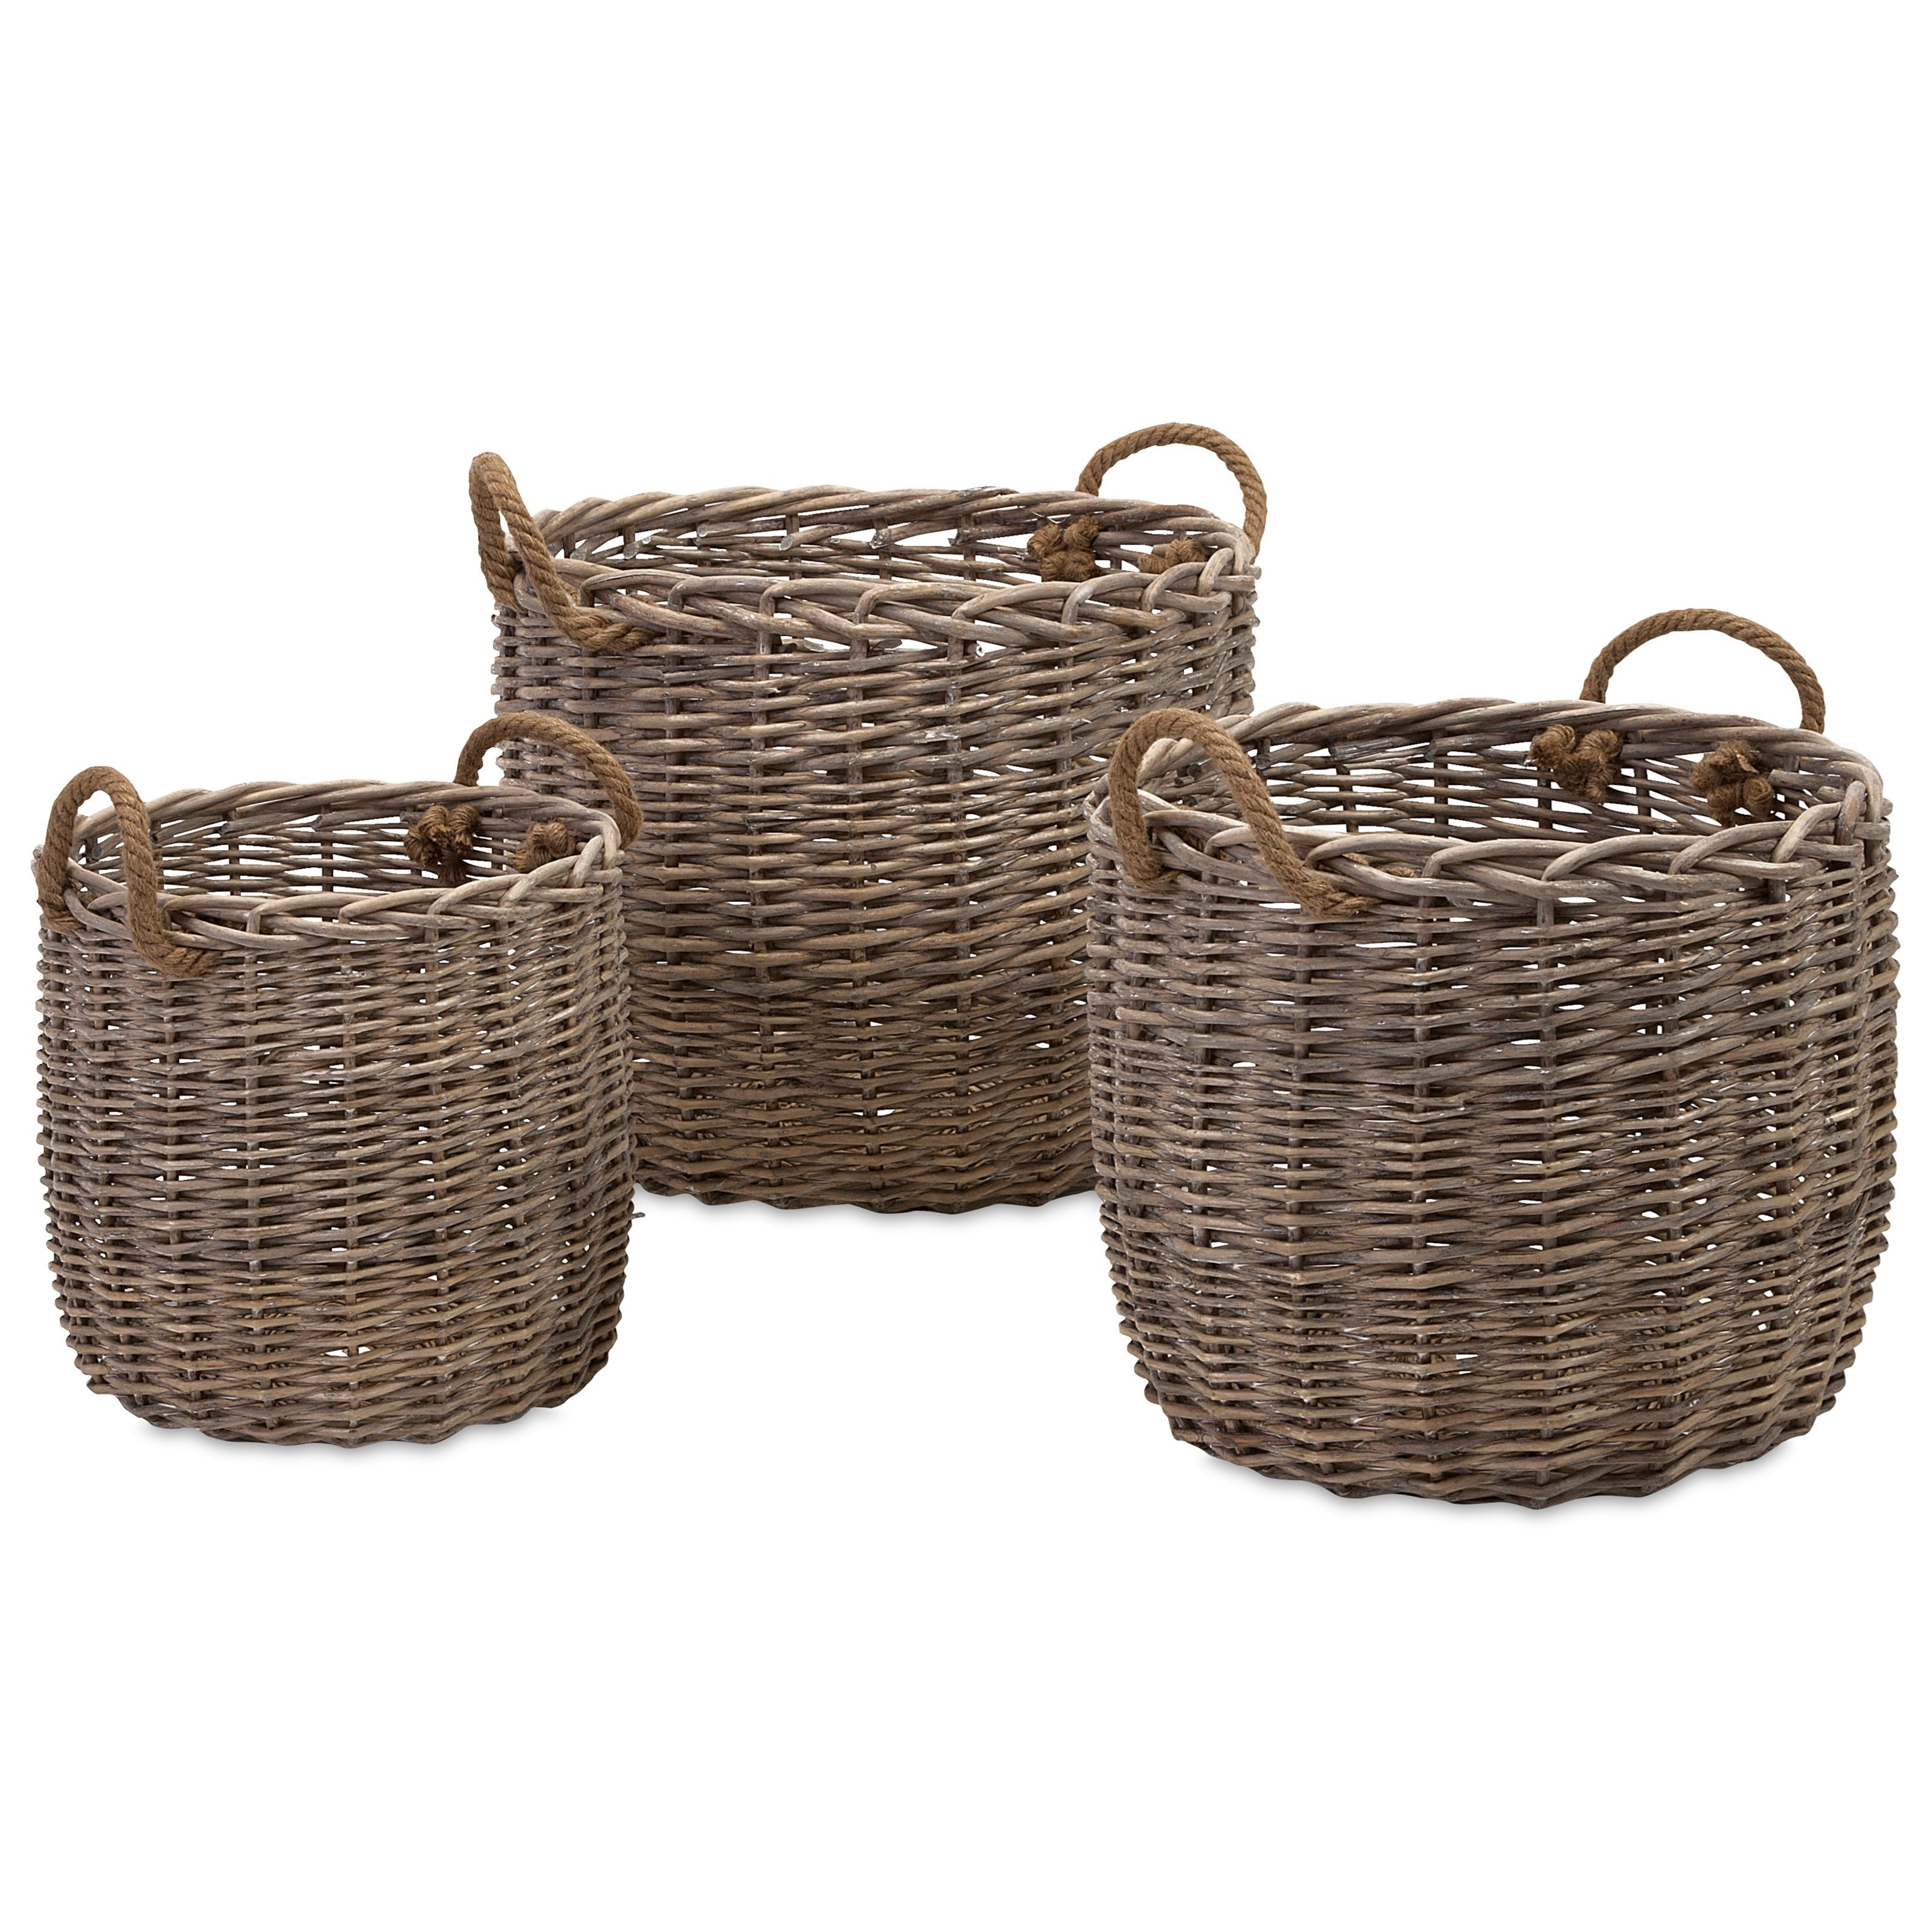 Baskets Mellie Willow Baskets - Set of 3 by IMAX Worldwide Home at Alison Craig Home Furnishings